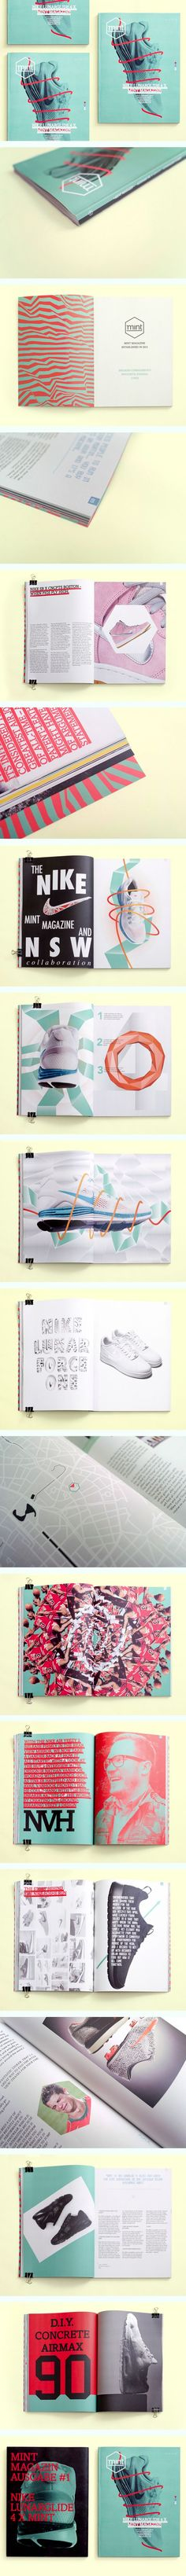 [Editorial Design Served'] MINT Magazine // Sneaker Magazine by Jonas Möllenbeck #editorial: